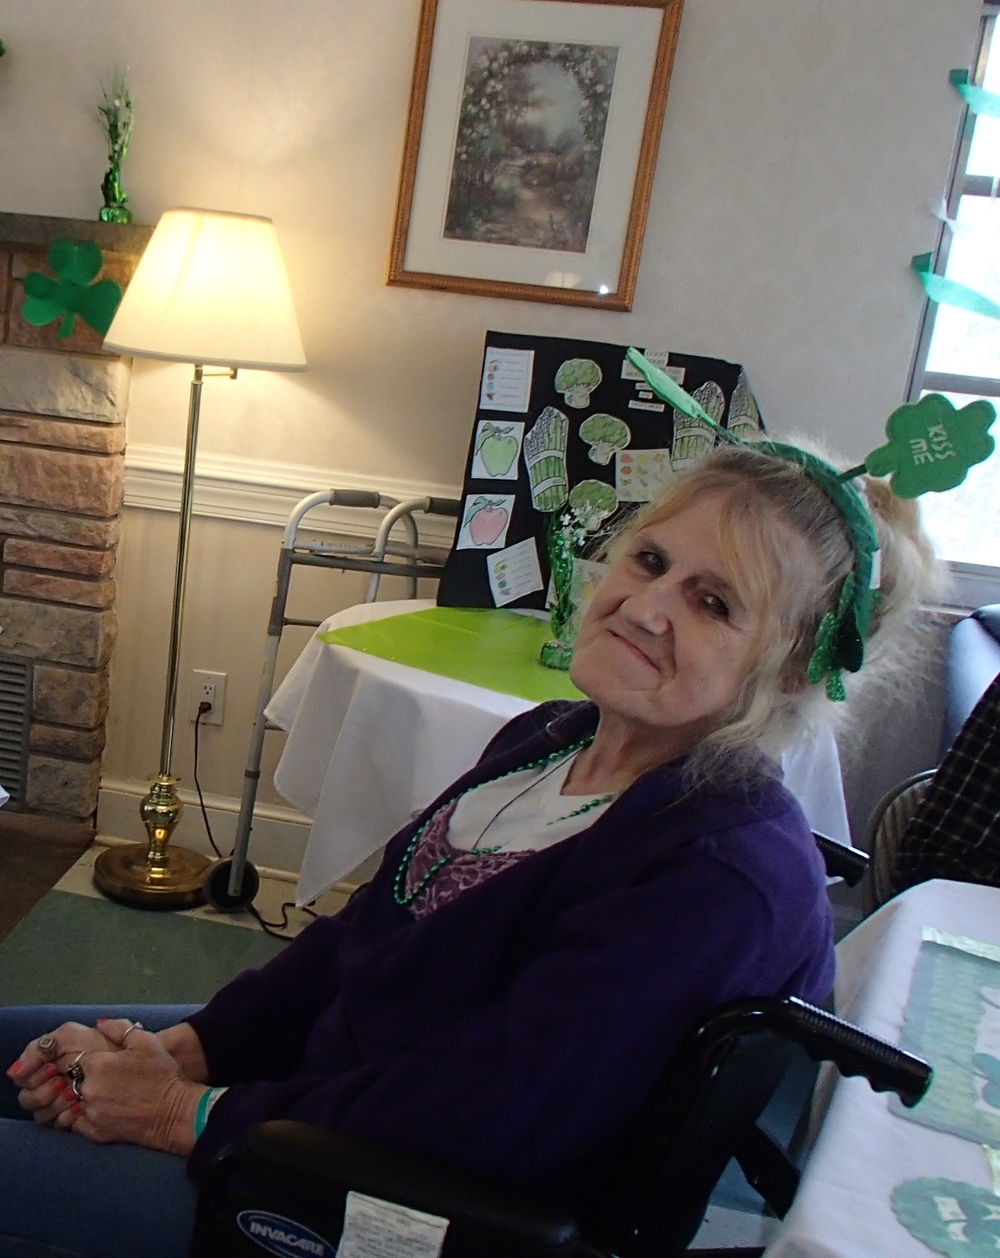 Ms. Robin Stamos is waiting for the St. Patrick's Day events to start!